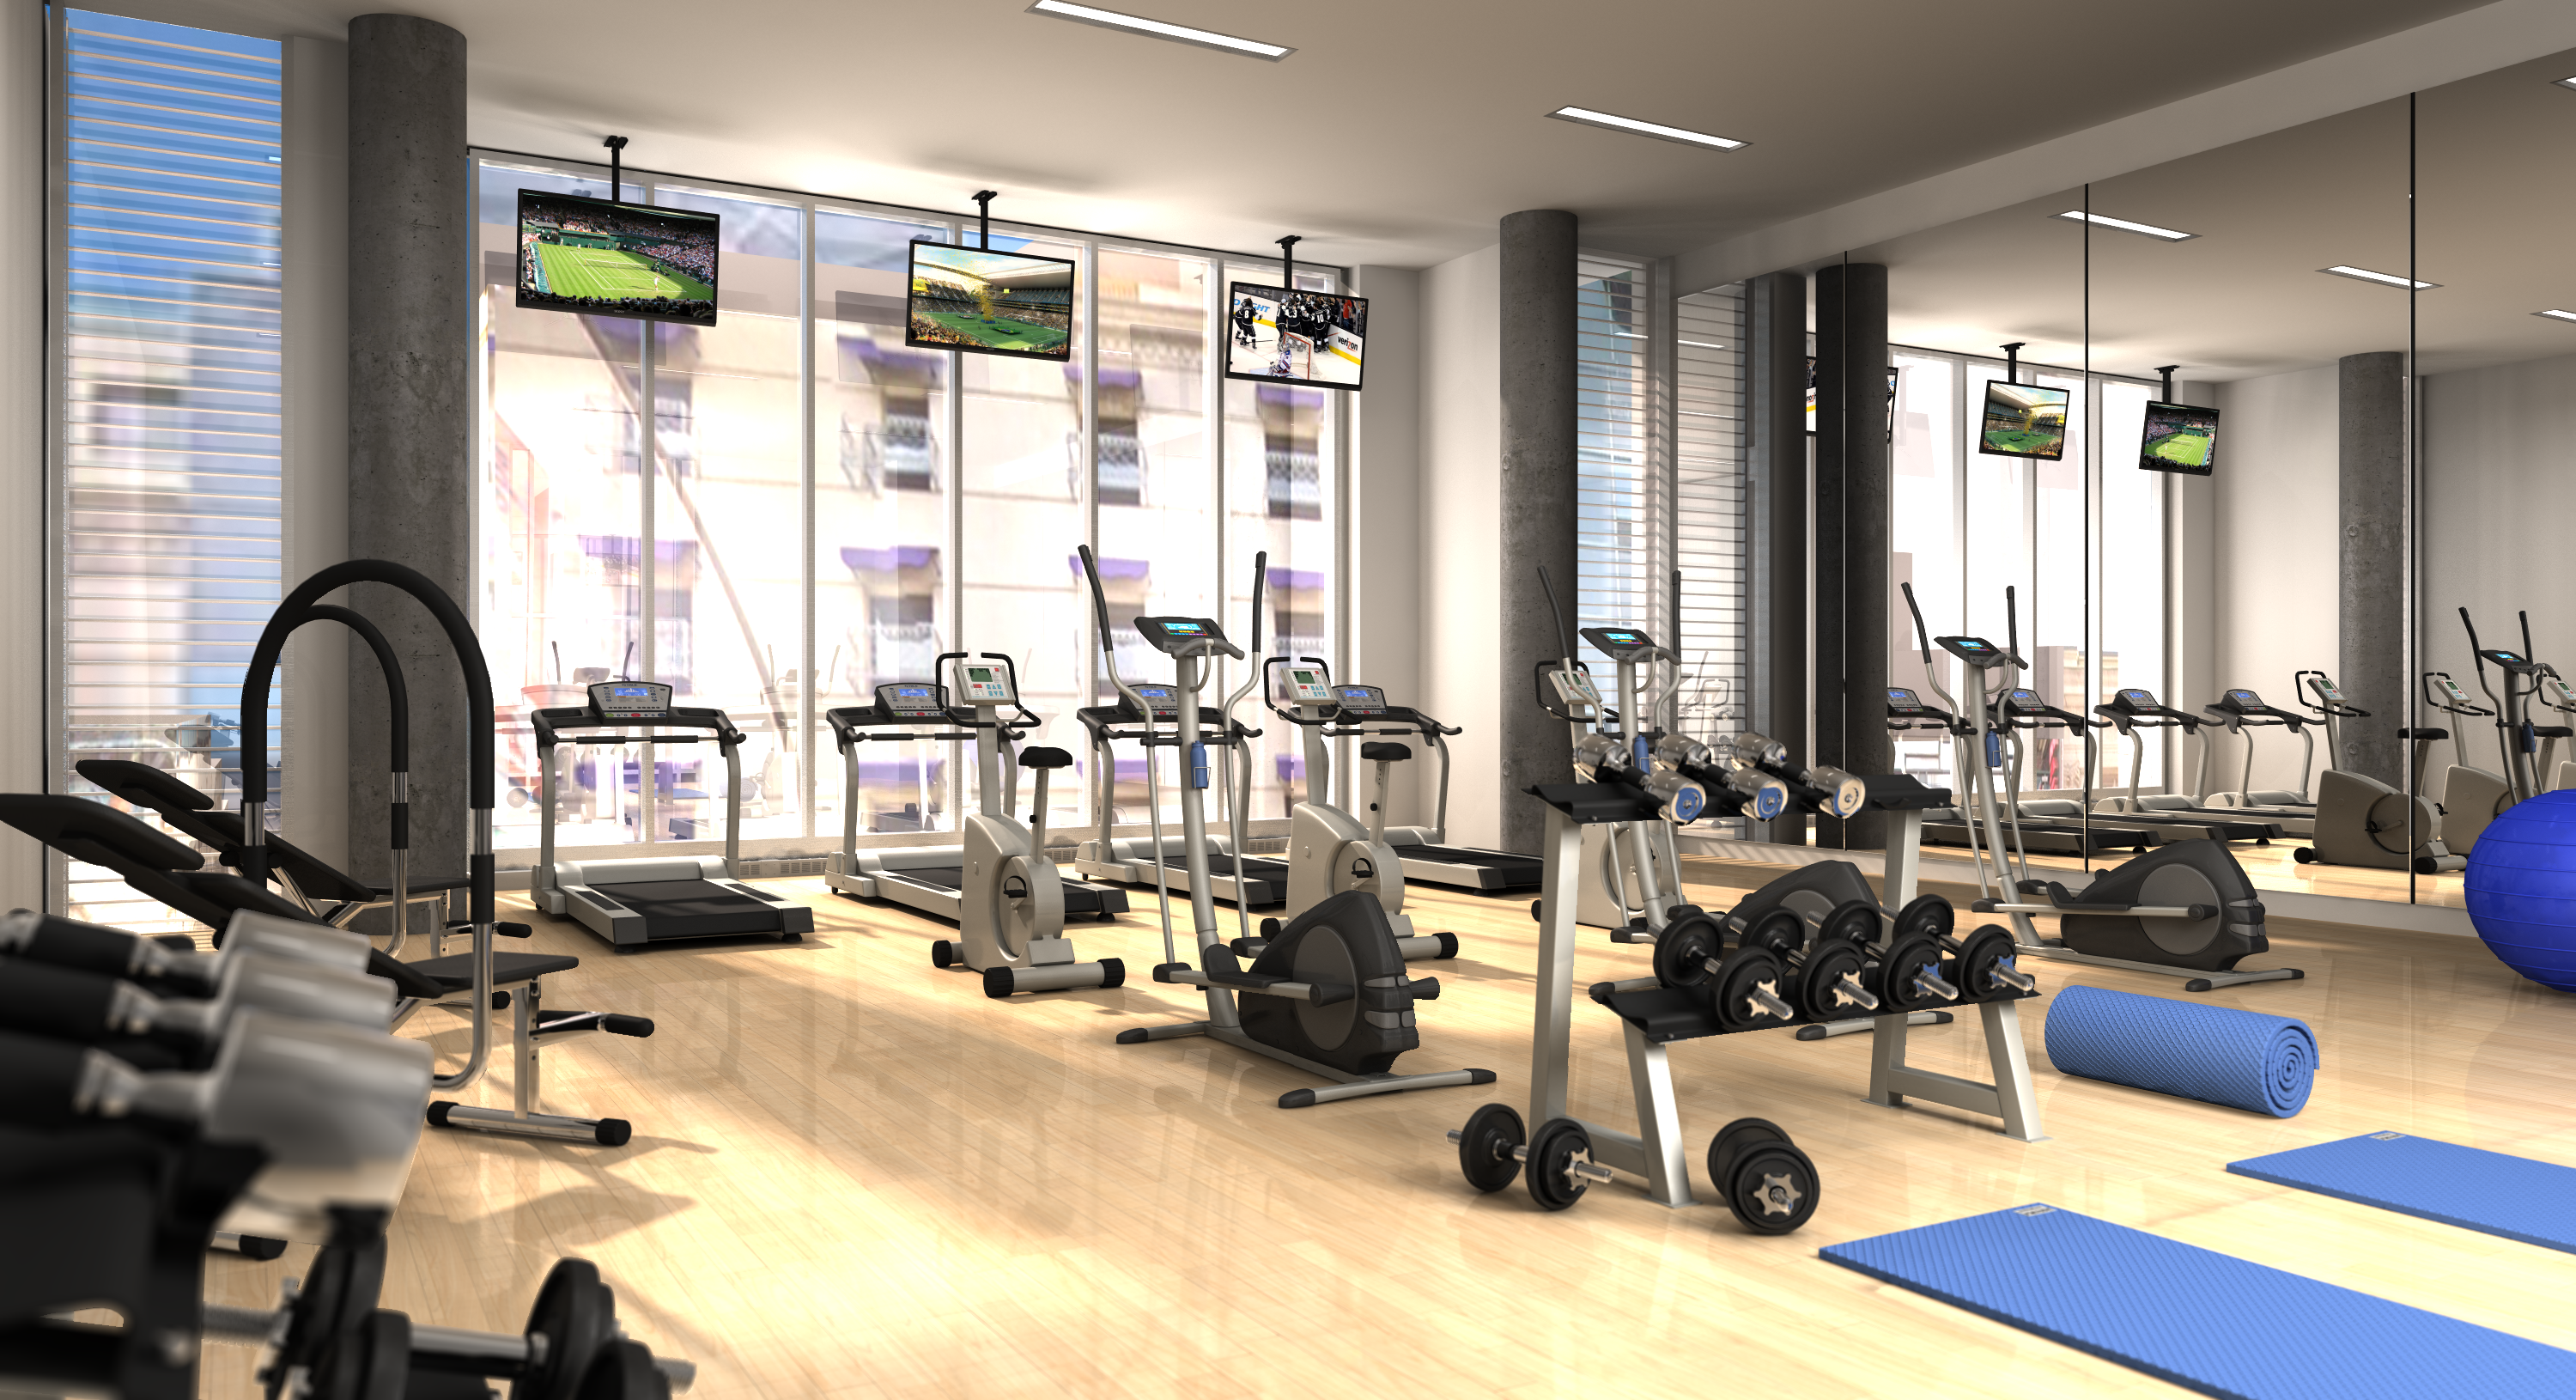 3d Modeling Rendering And Animation Condo Gym 3d Model Scene Rendered 3d Modeling Model Animation